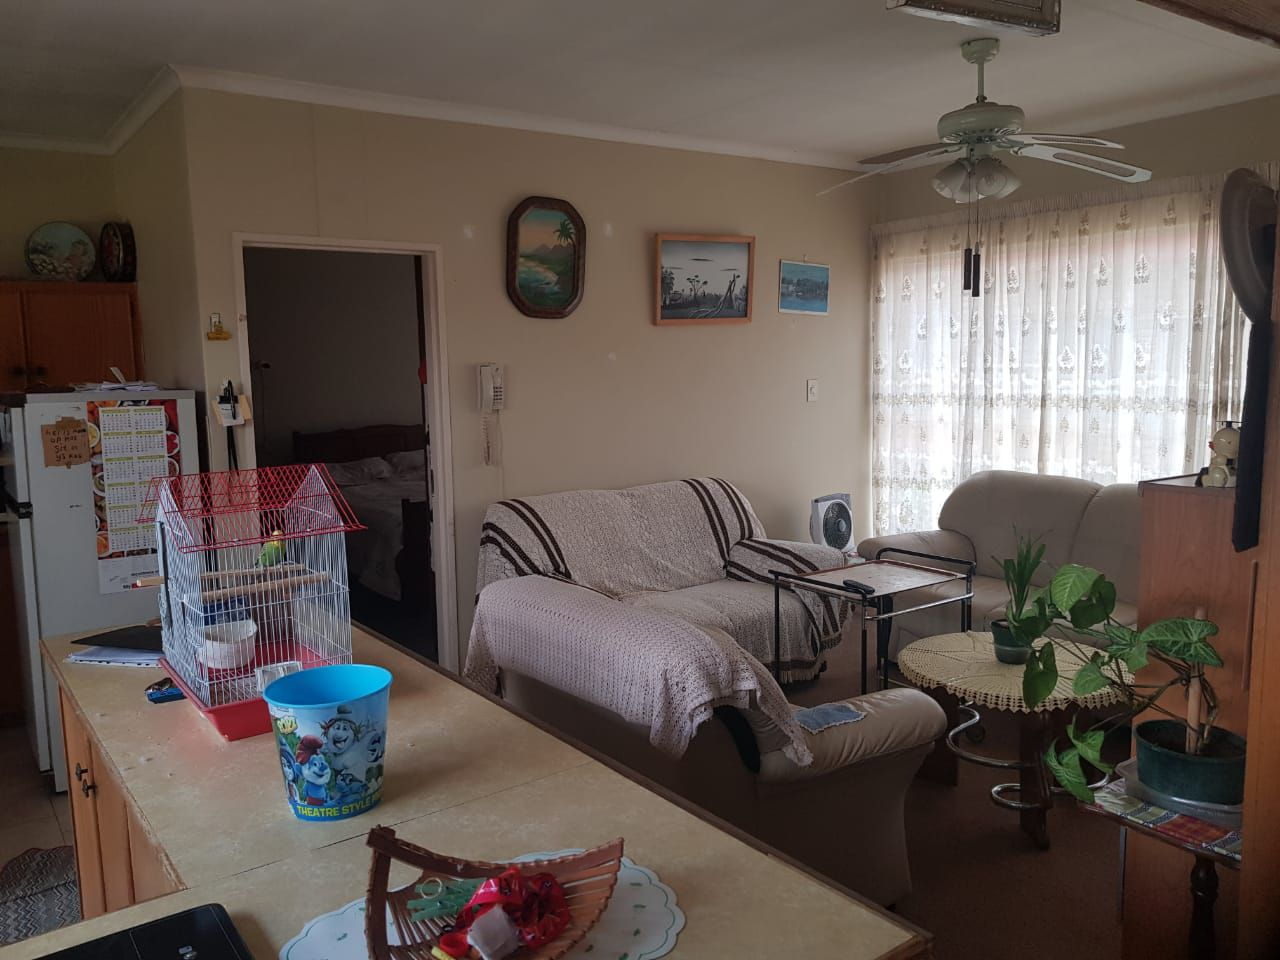 Apartment in Miederpark - 50DF0C59-98D4-4131-A216-5FC26938C049.jpeg